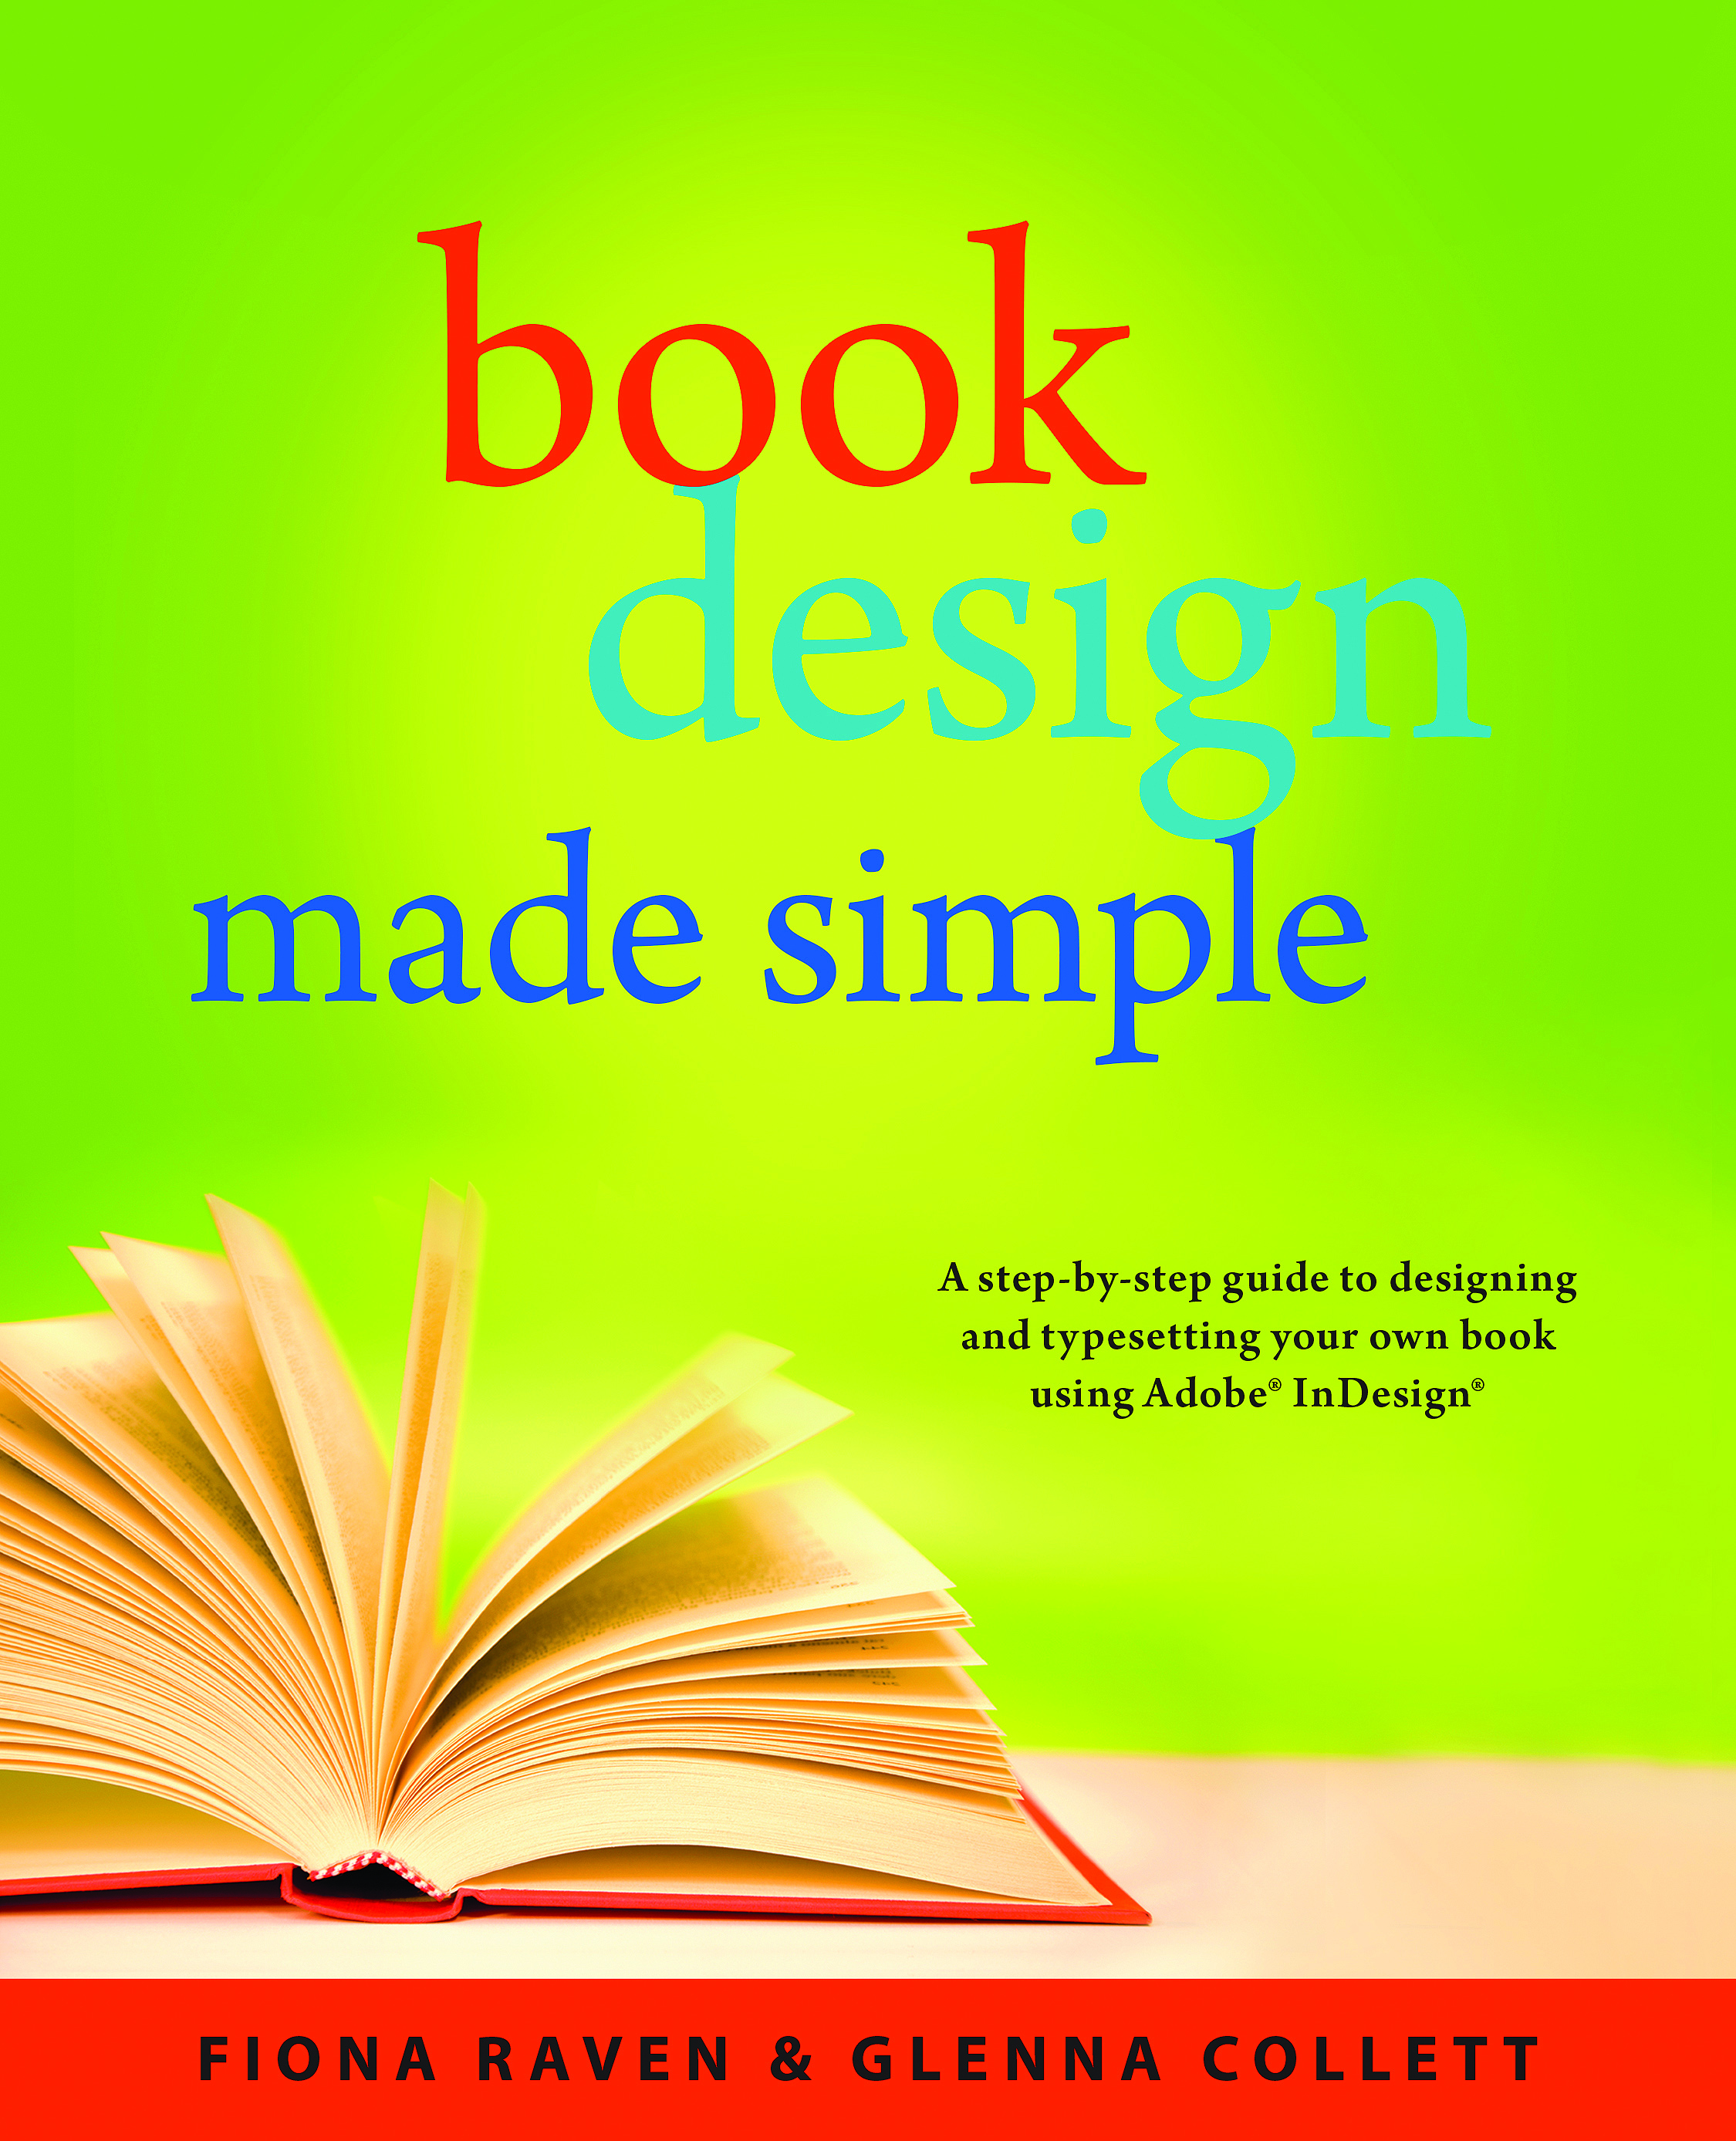 Book-Design-Made-Simple_7.5x9.25in